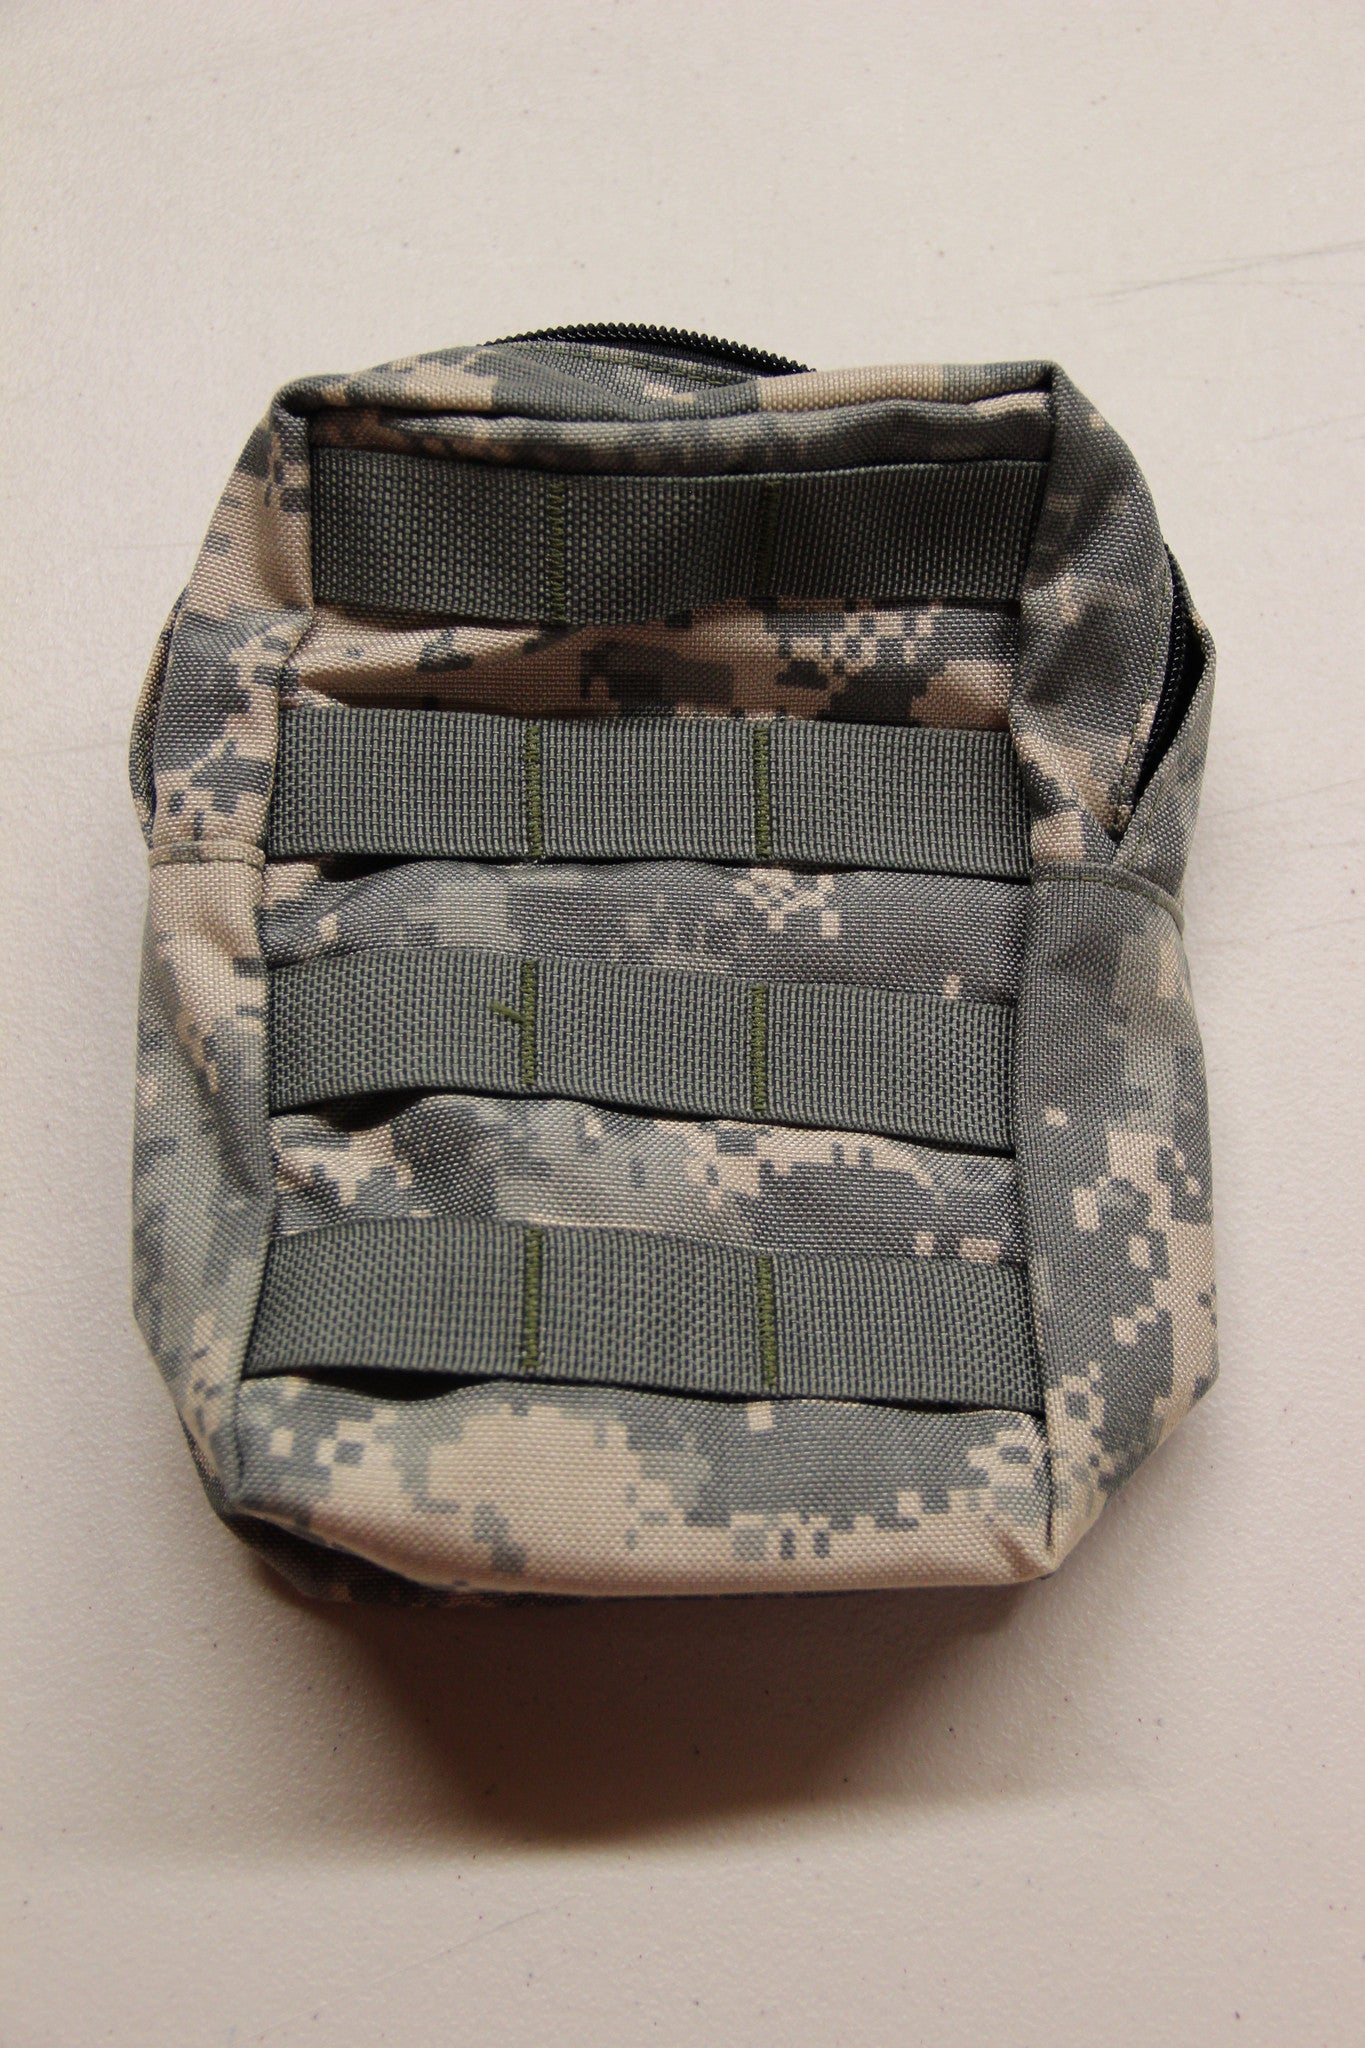 Paraclete Medium General Purpose Pouch - New/Issued - RELSurplus